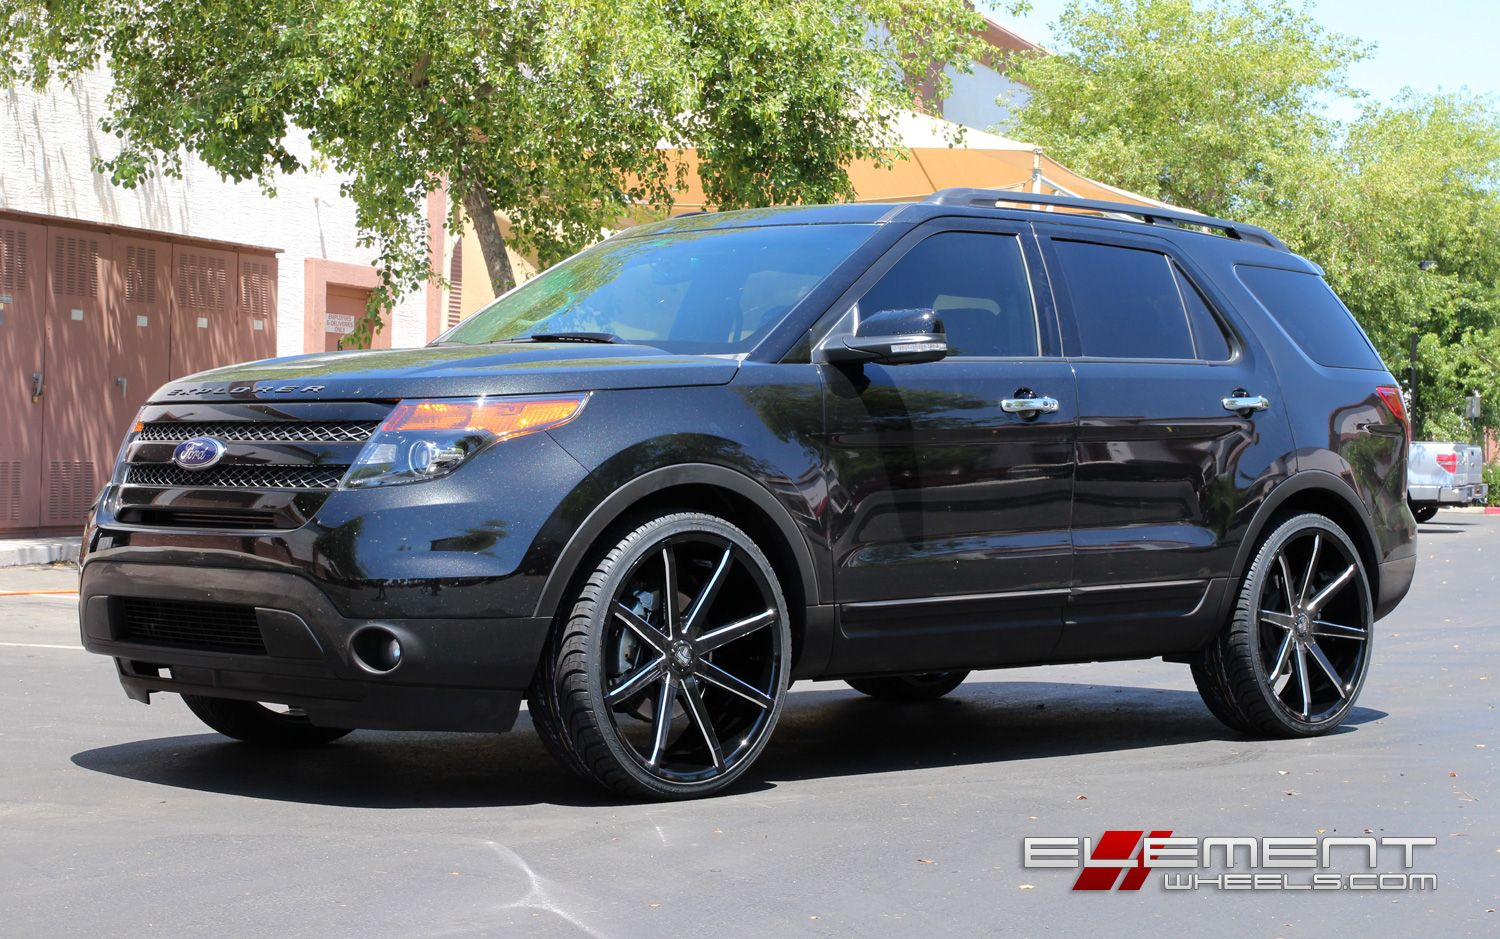 24 inch dub push gloss black milled wheels on 2014 ford explorer w specs wheels - New 2015 Ford Explorer Black Color